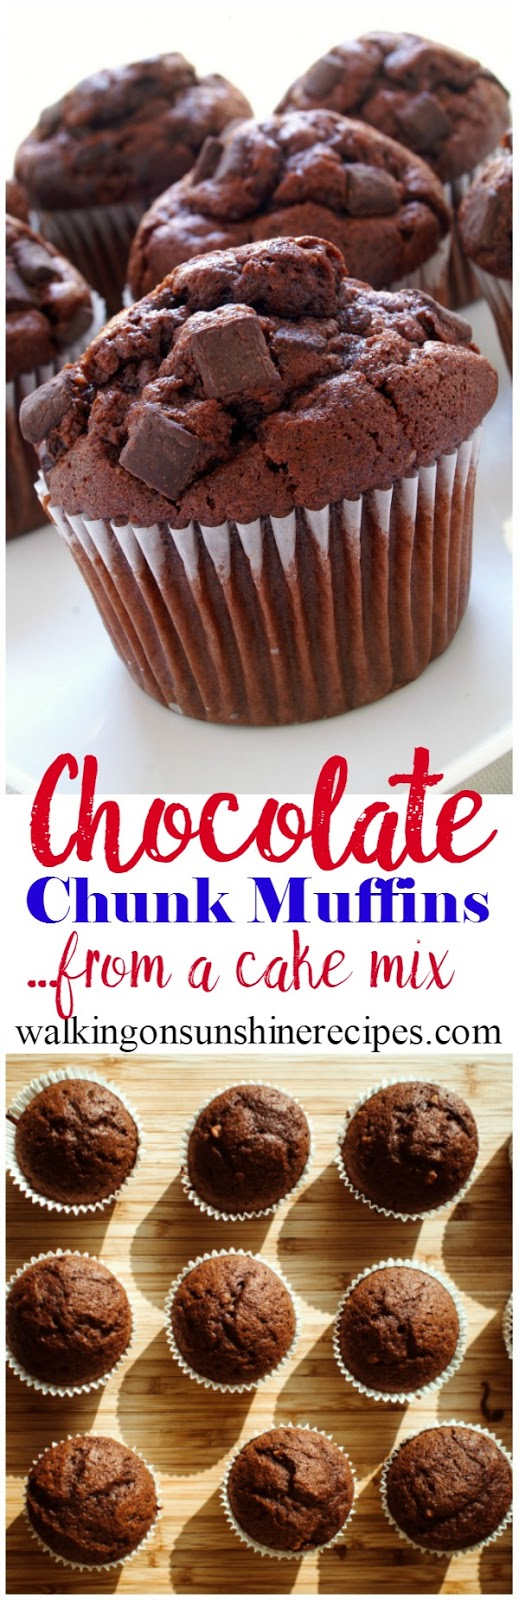 You can have chocolate for breakfast with these chocolate chunk muffins.